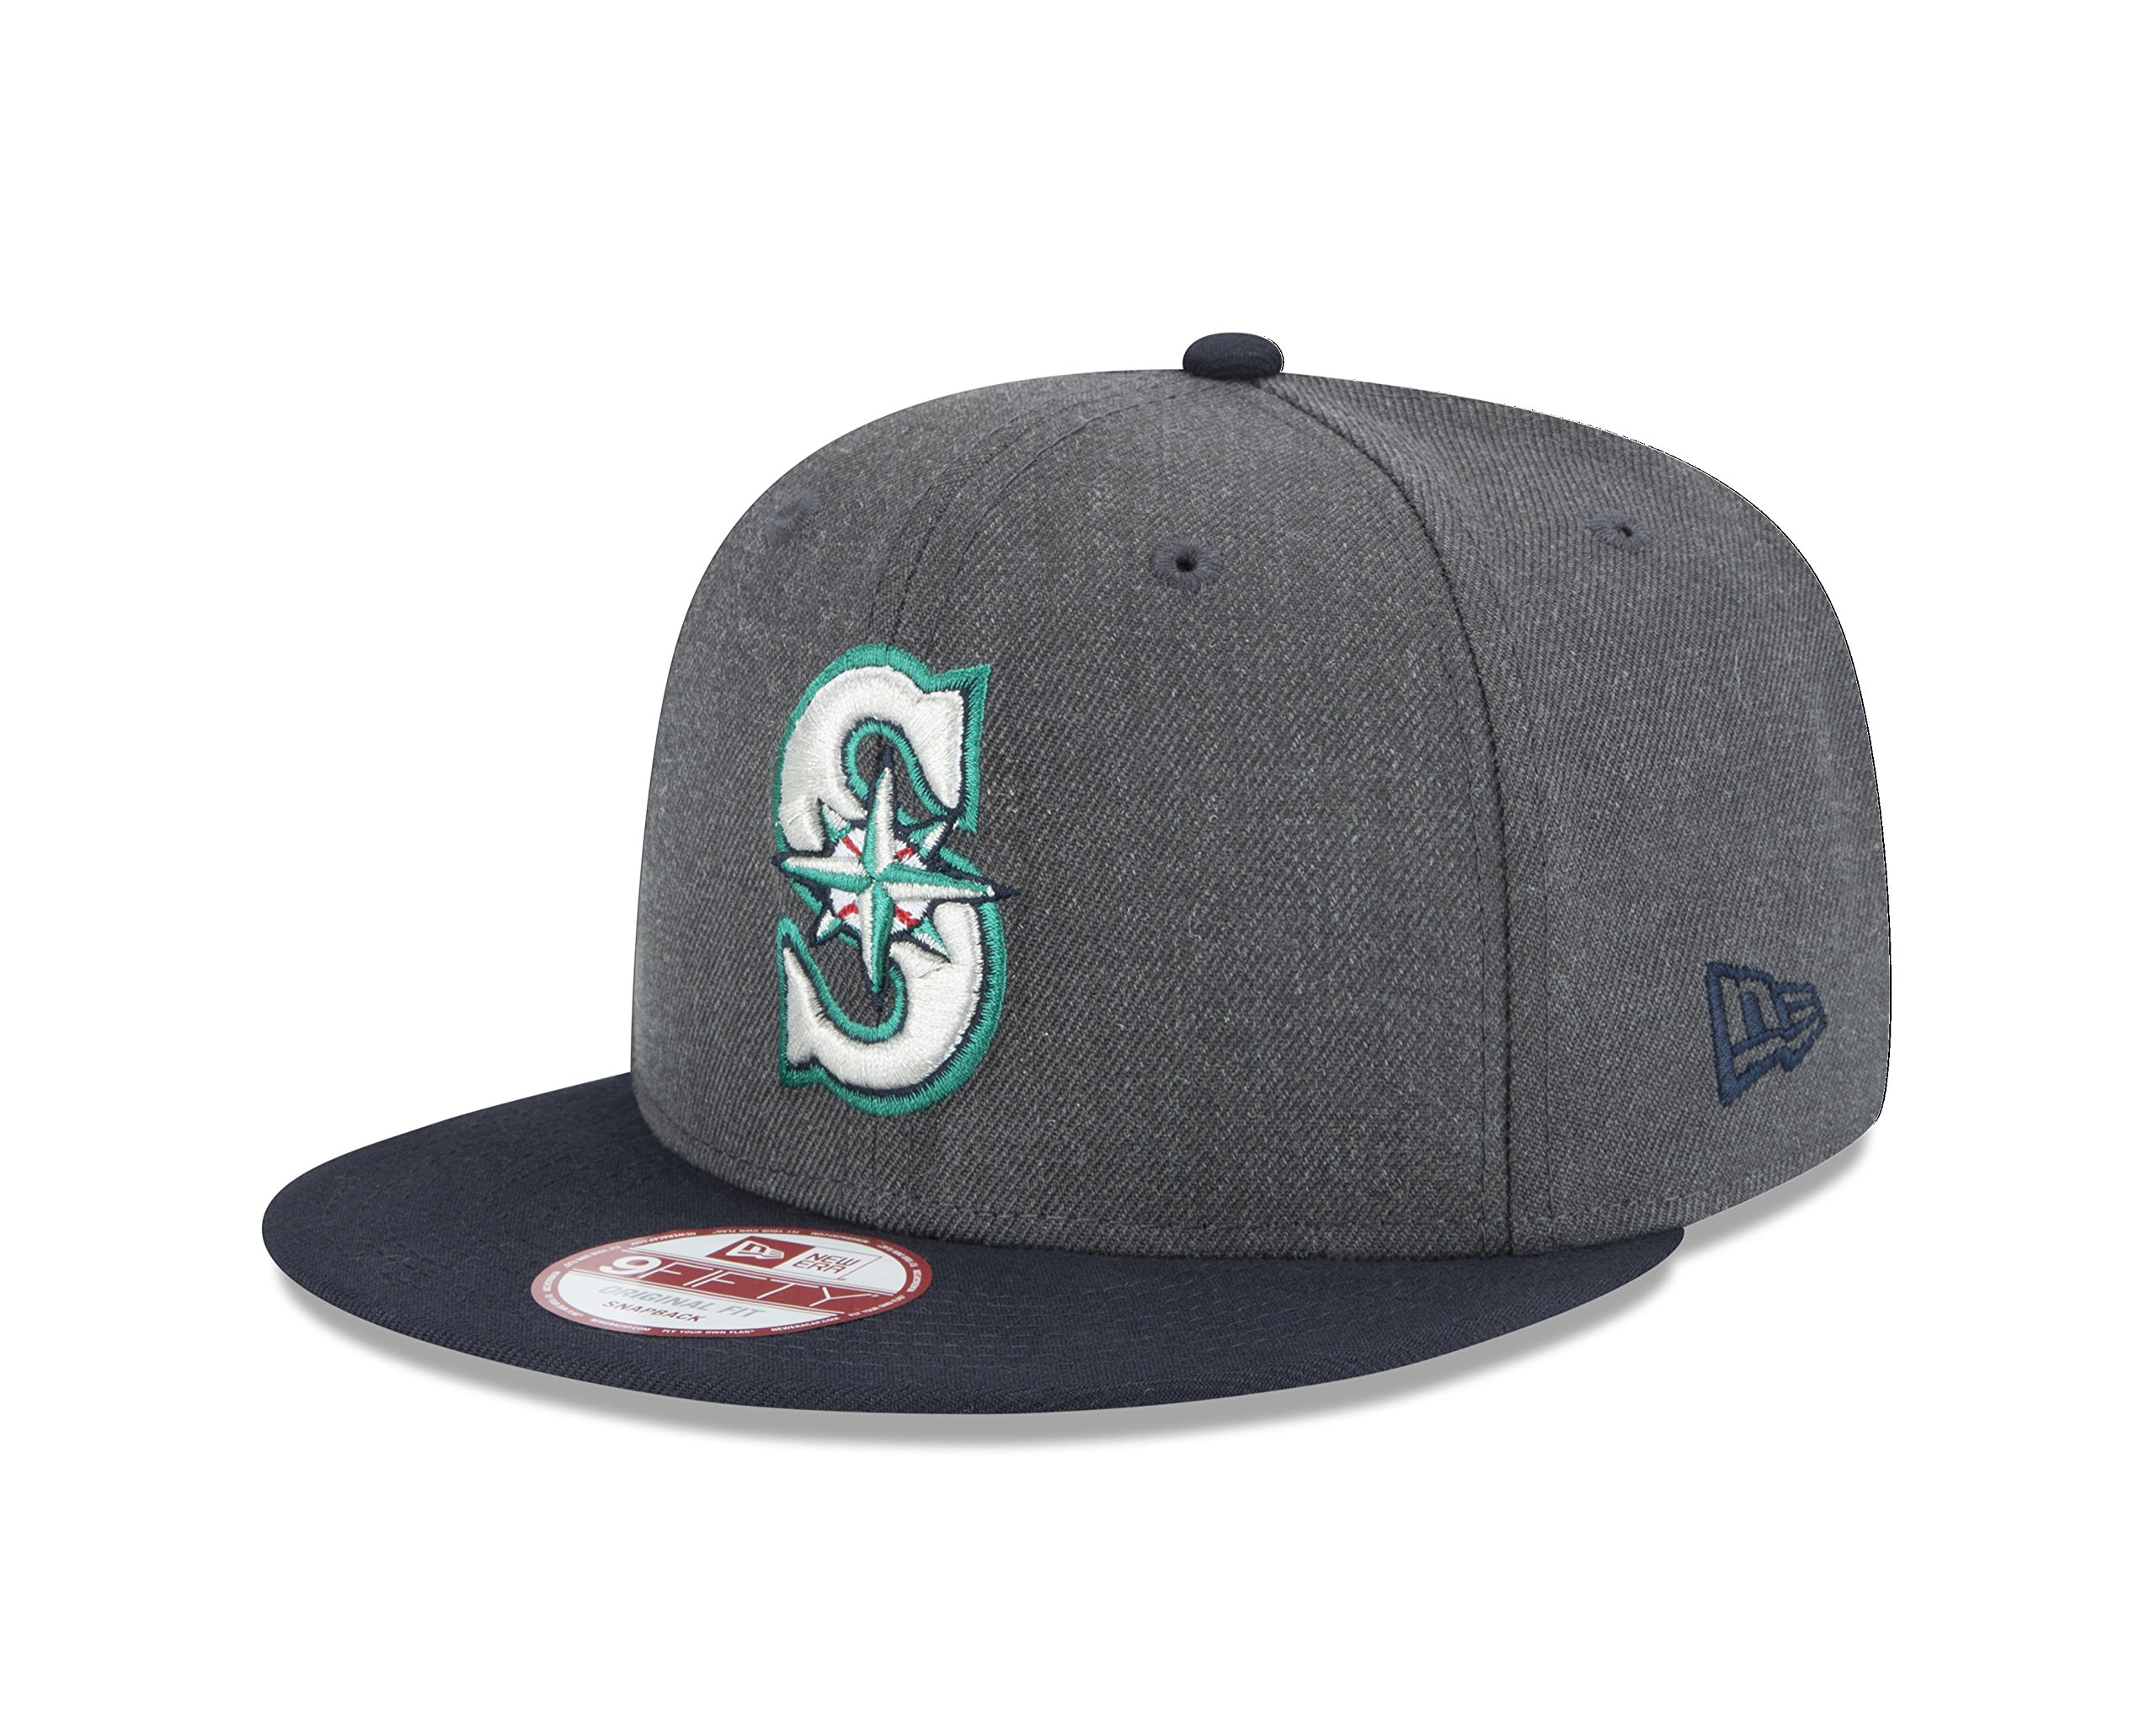 sports shoes f6b4e e9ec3 Galleon - New Era MLB Seattle Mariners Heather 9Fifty Snapback Cap, One Size,  Graphite